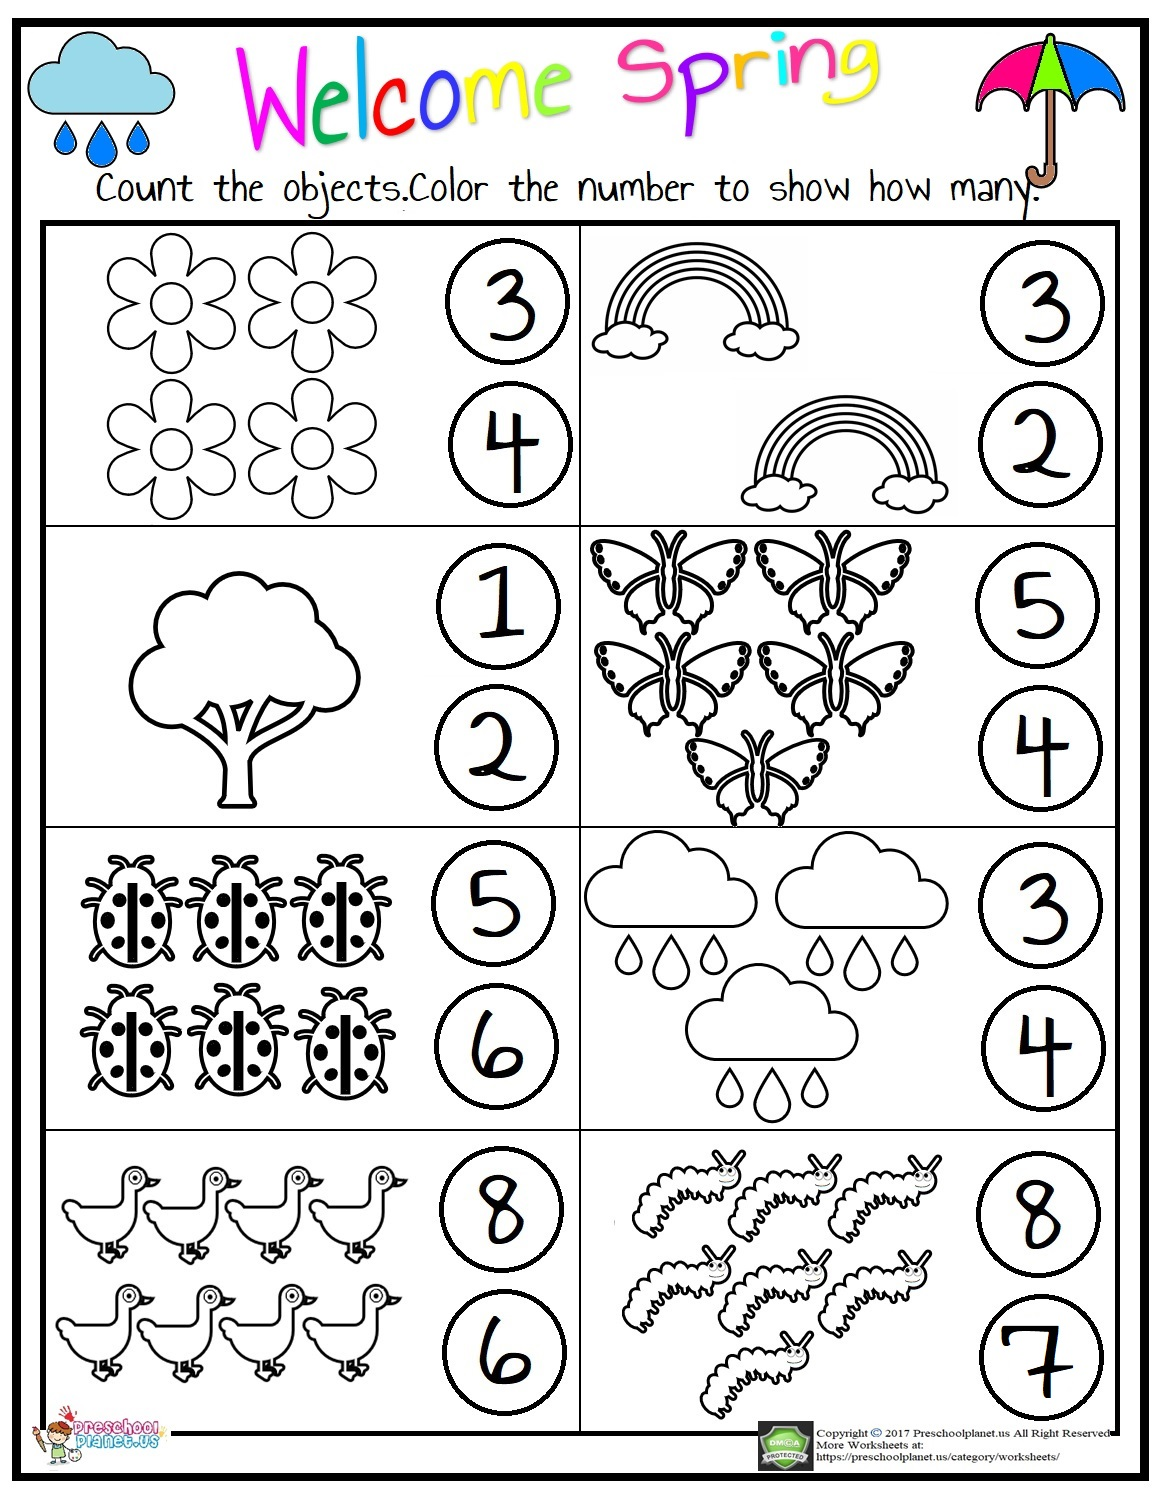 Download Counting Worksheet Preschoolplanet